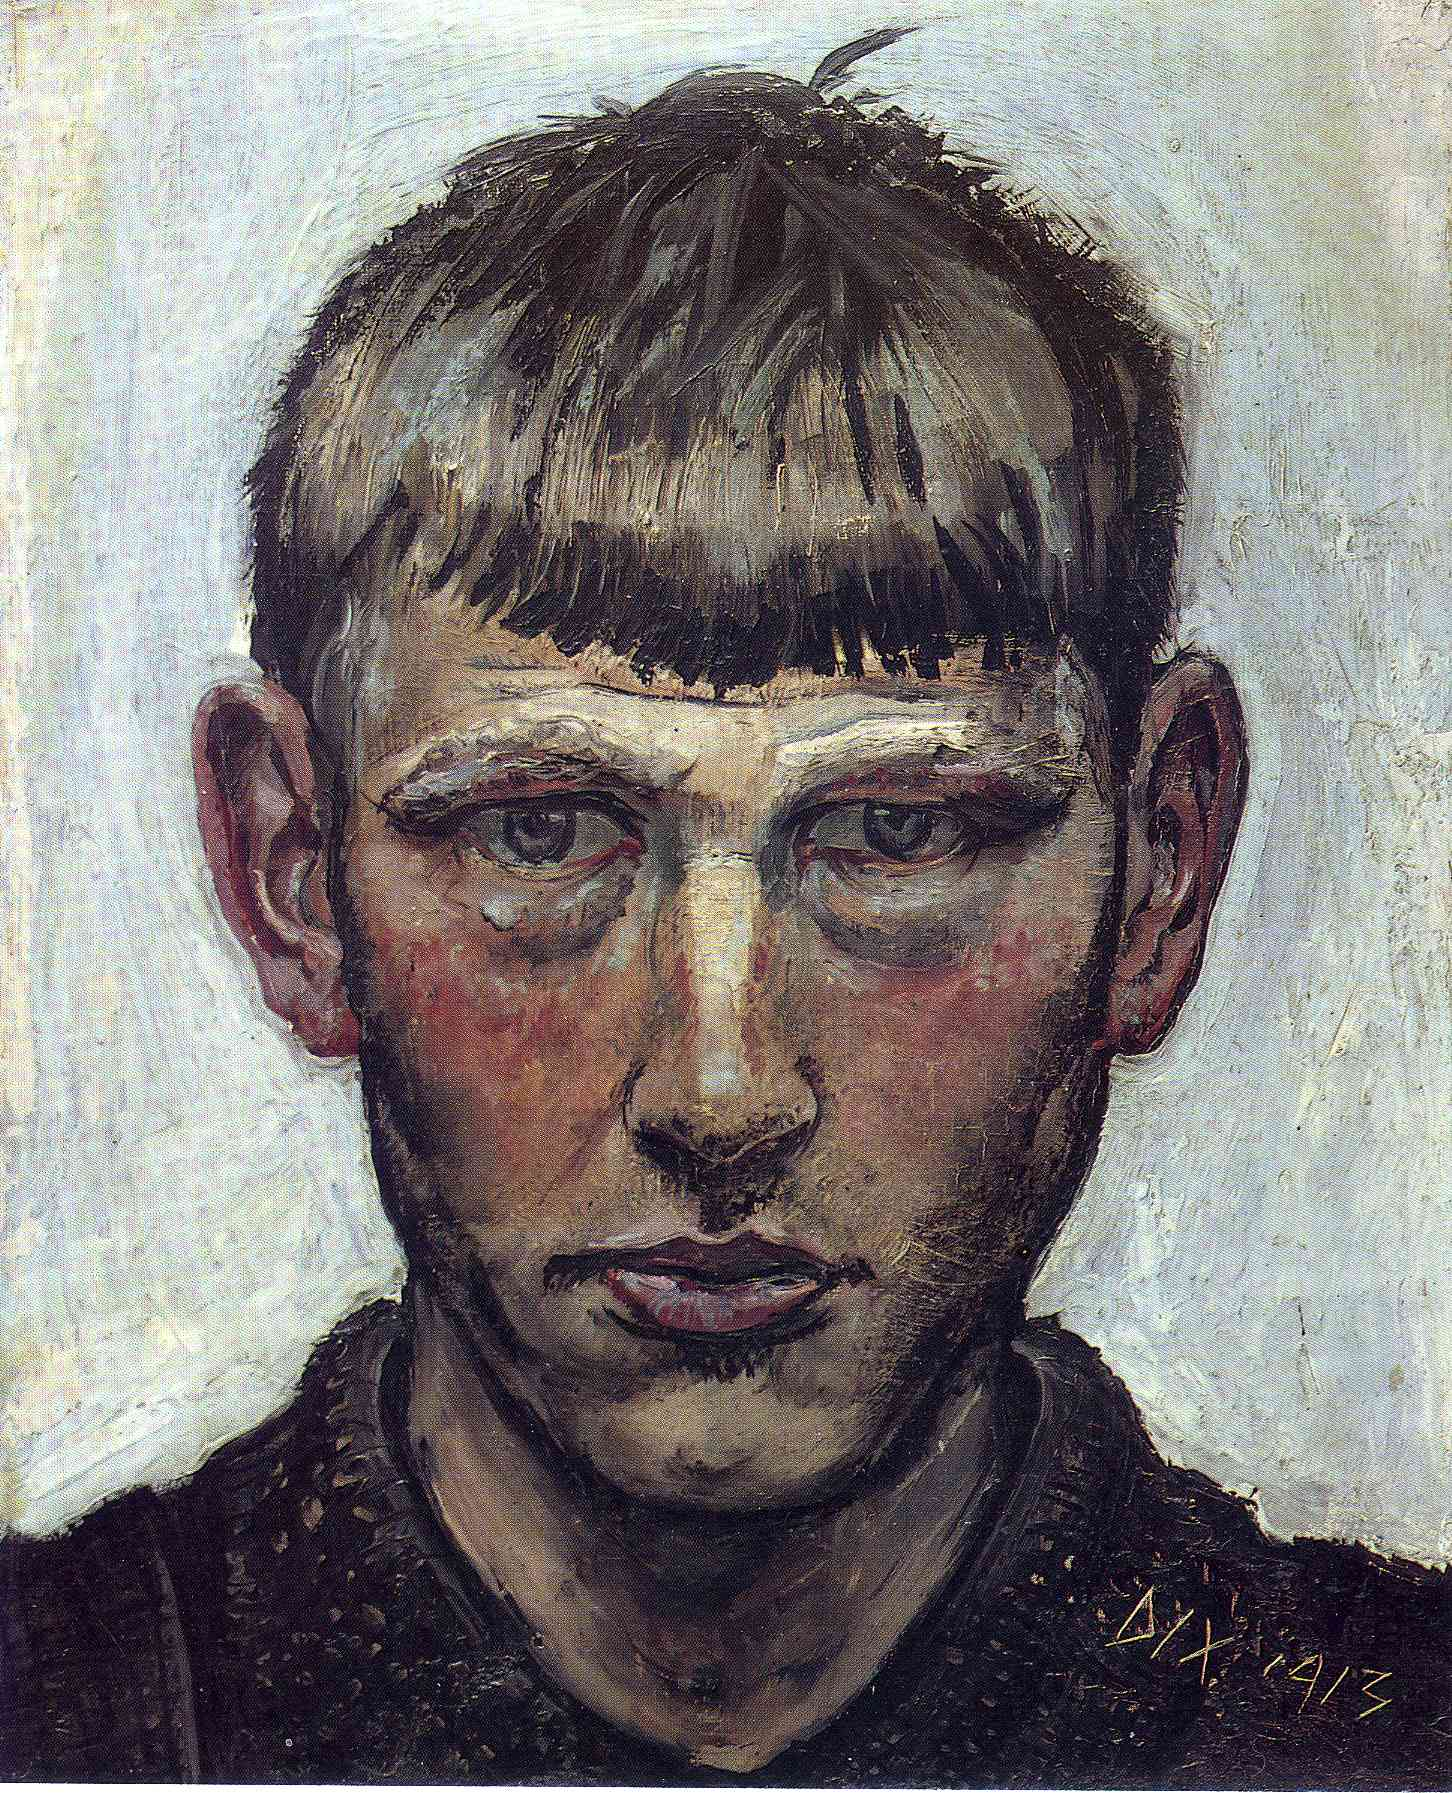 artists and self portraits In, chronological order, here are 10 of the most significant self-portraits from different time periods in van gogh's life.